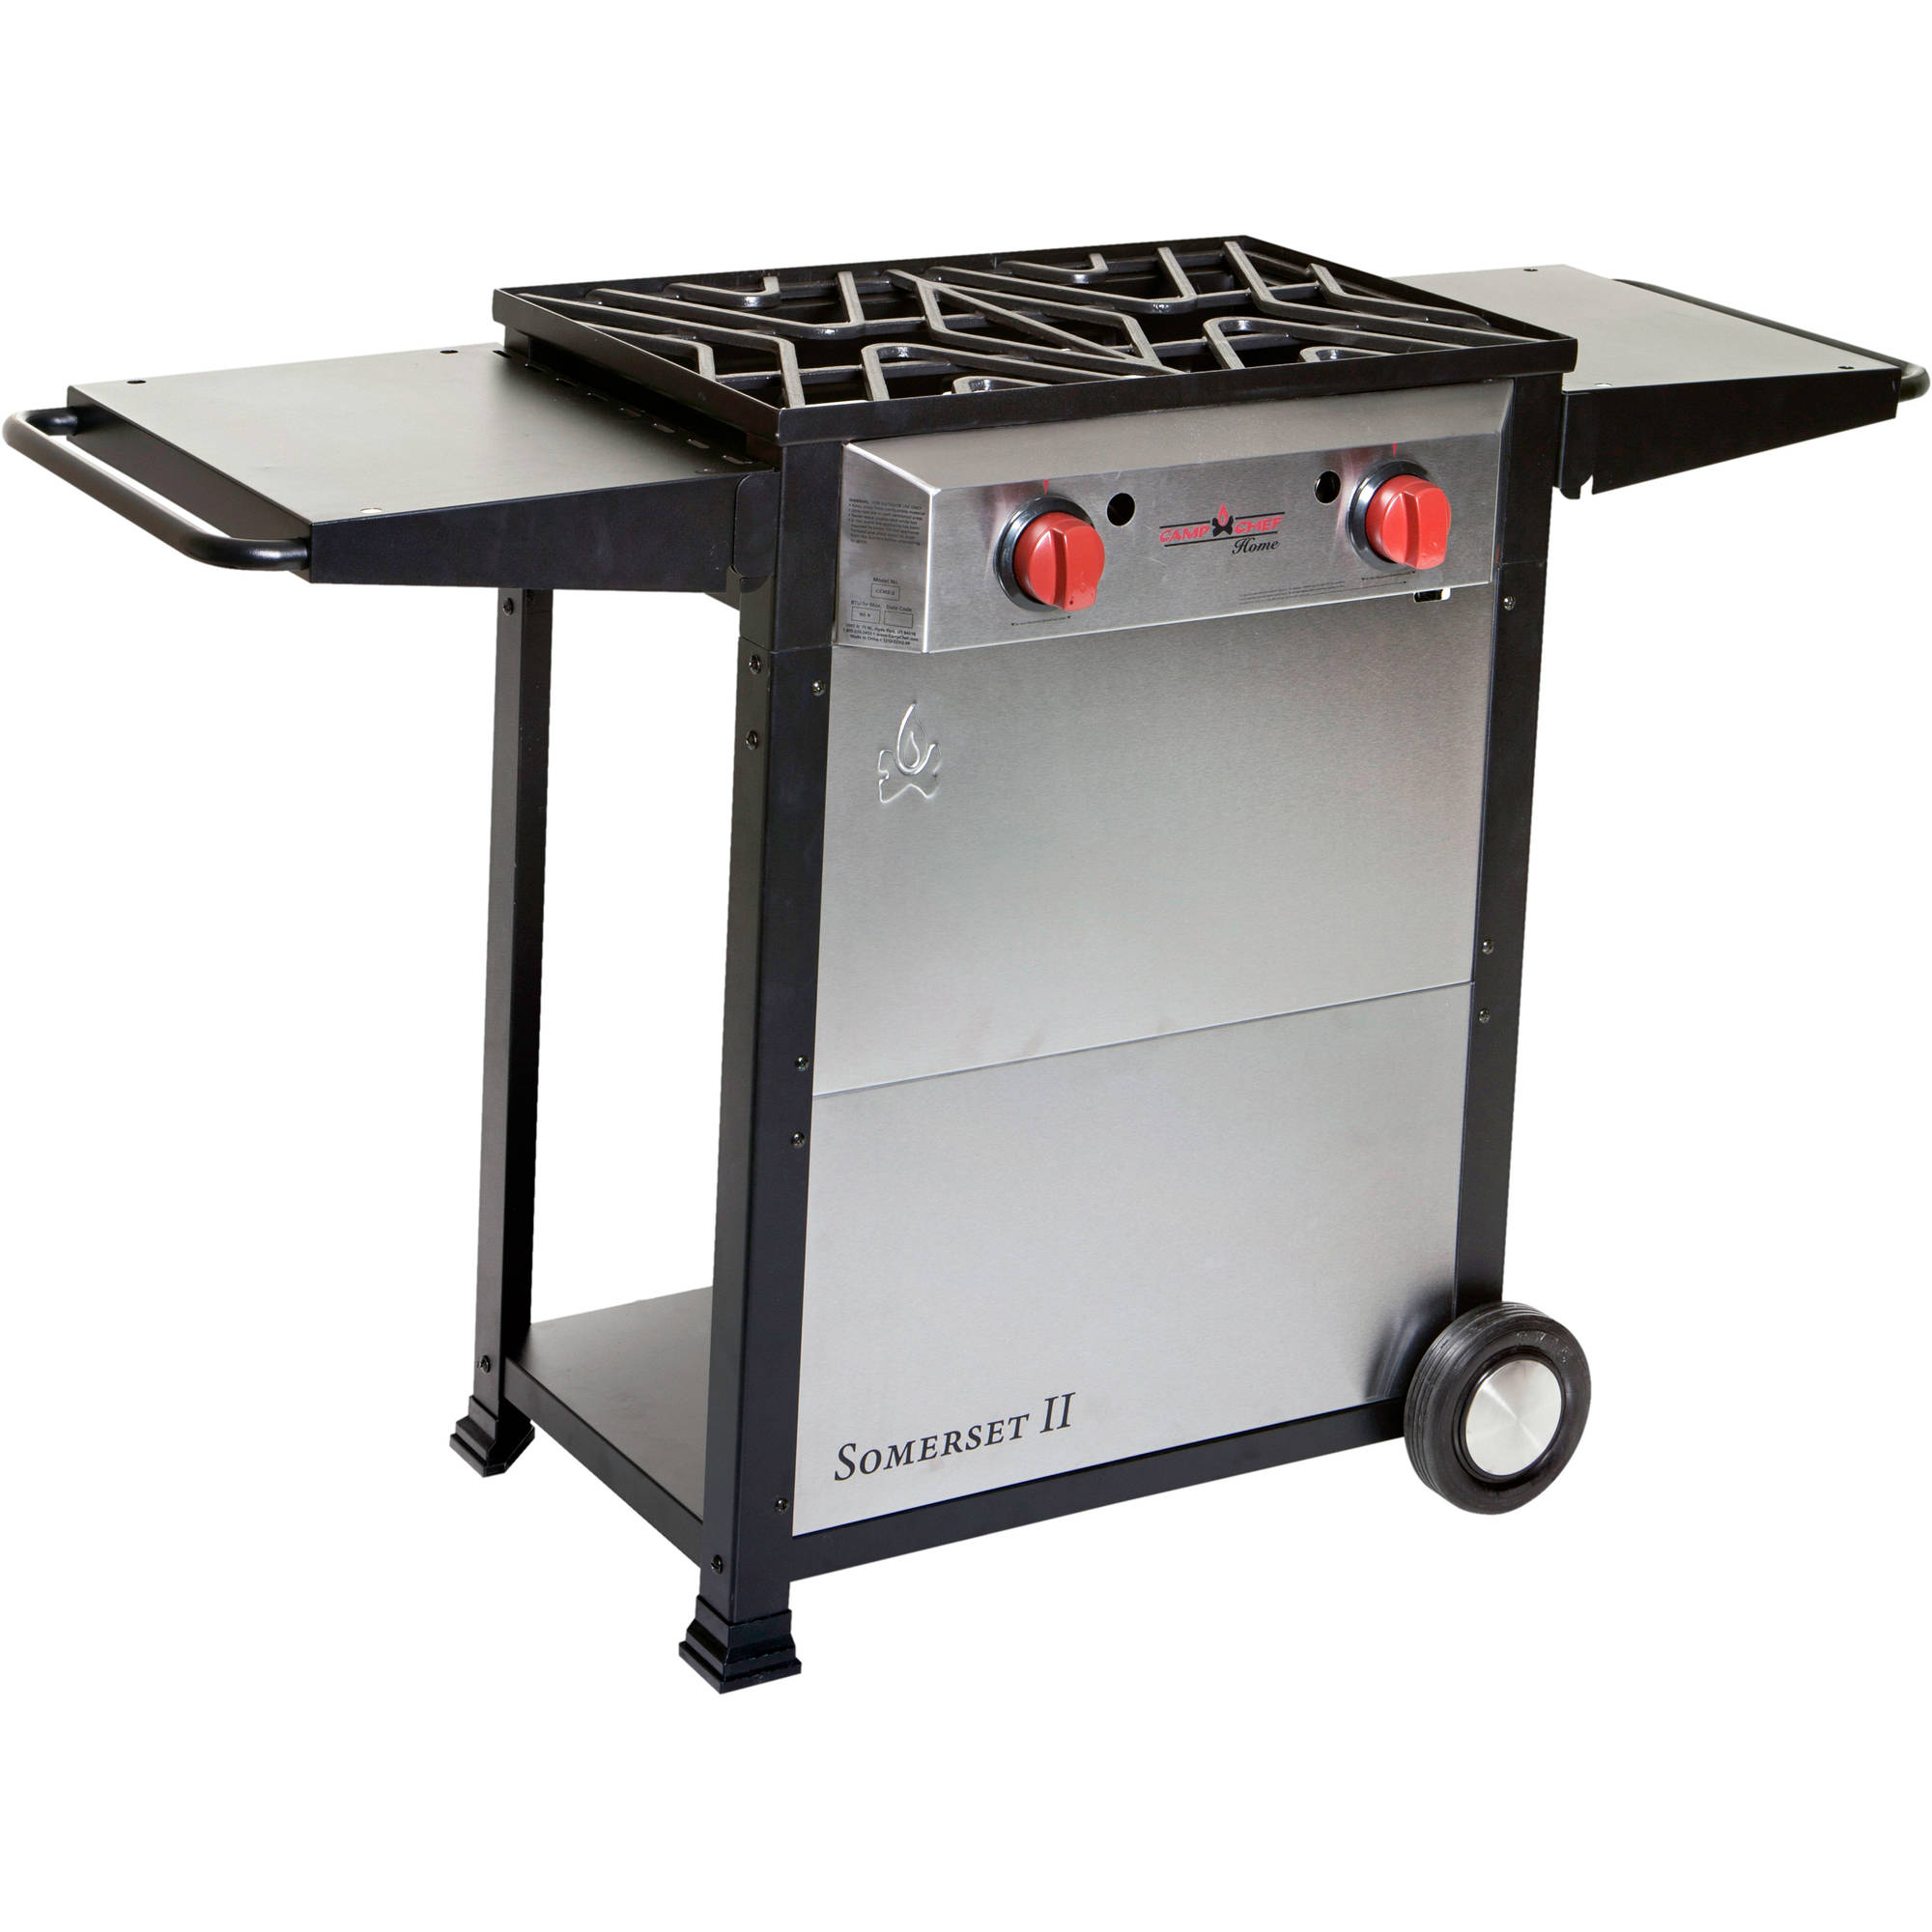 Camp Chef Somerset II Double Burner Cart Range with Wheels